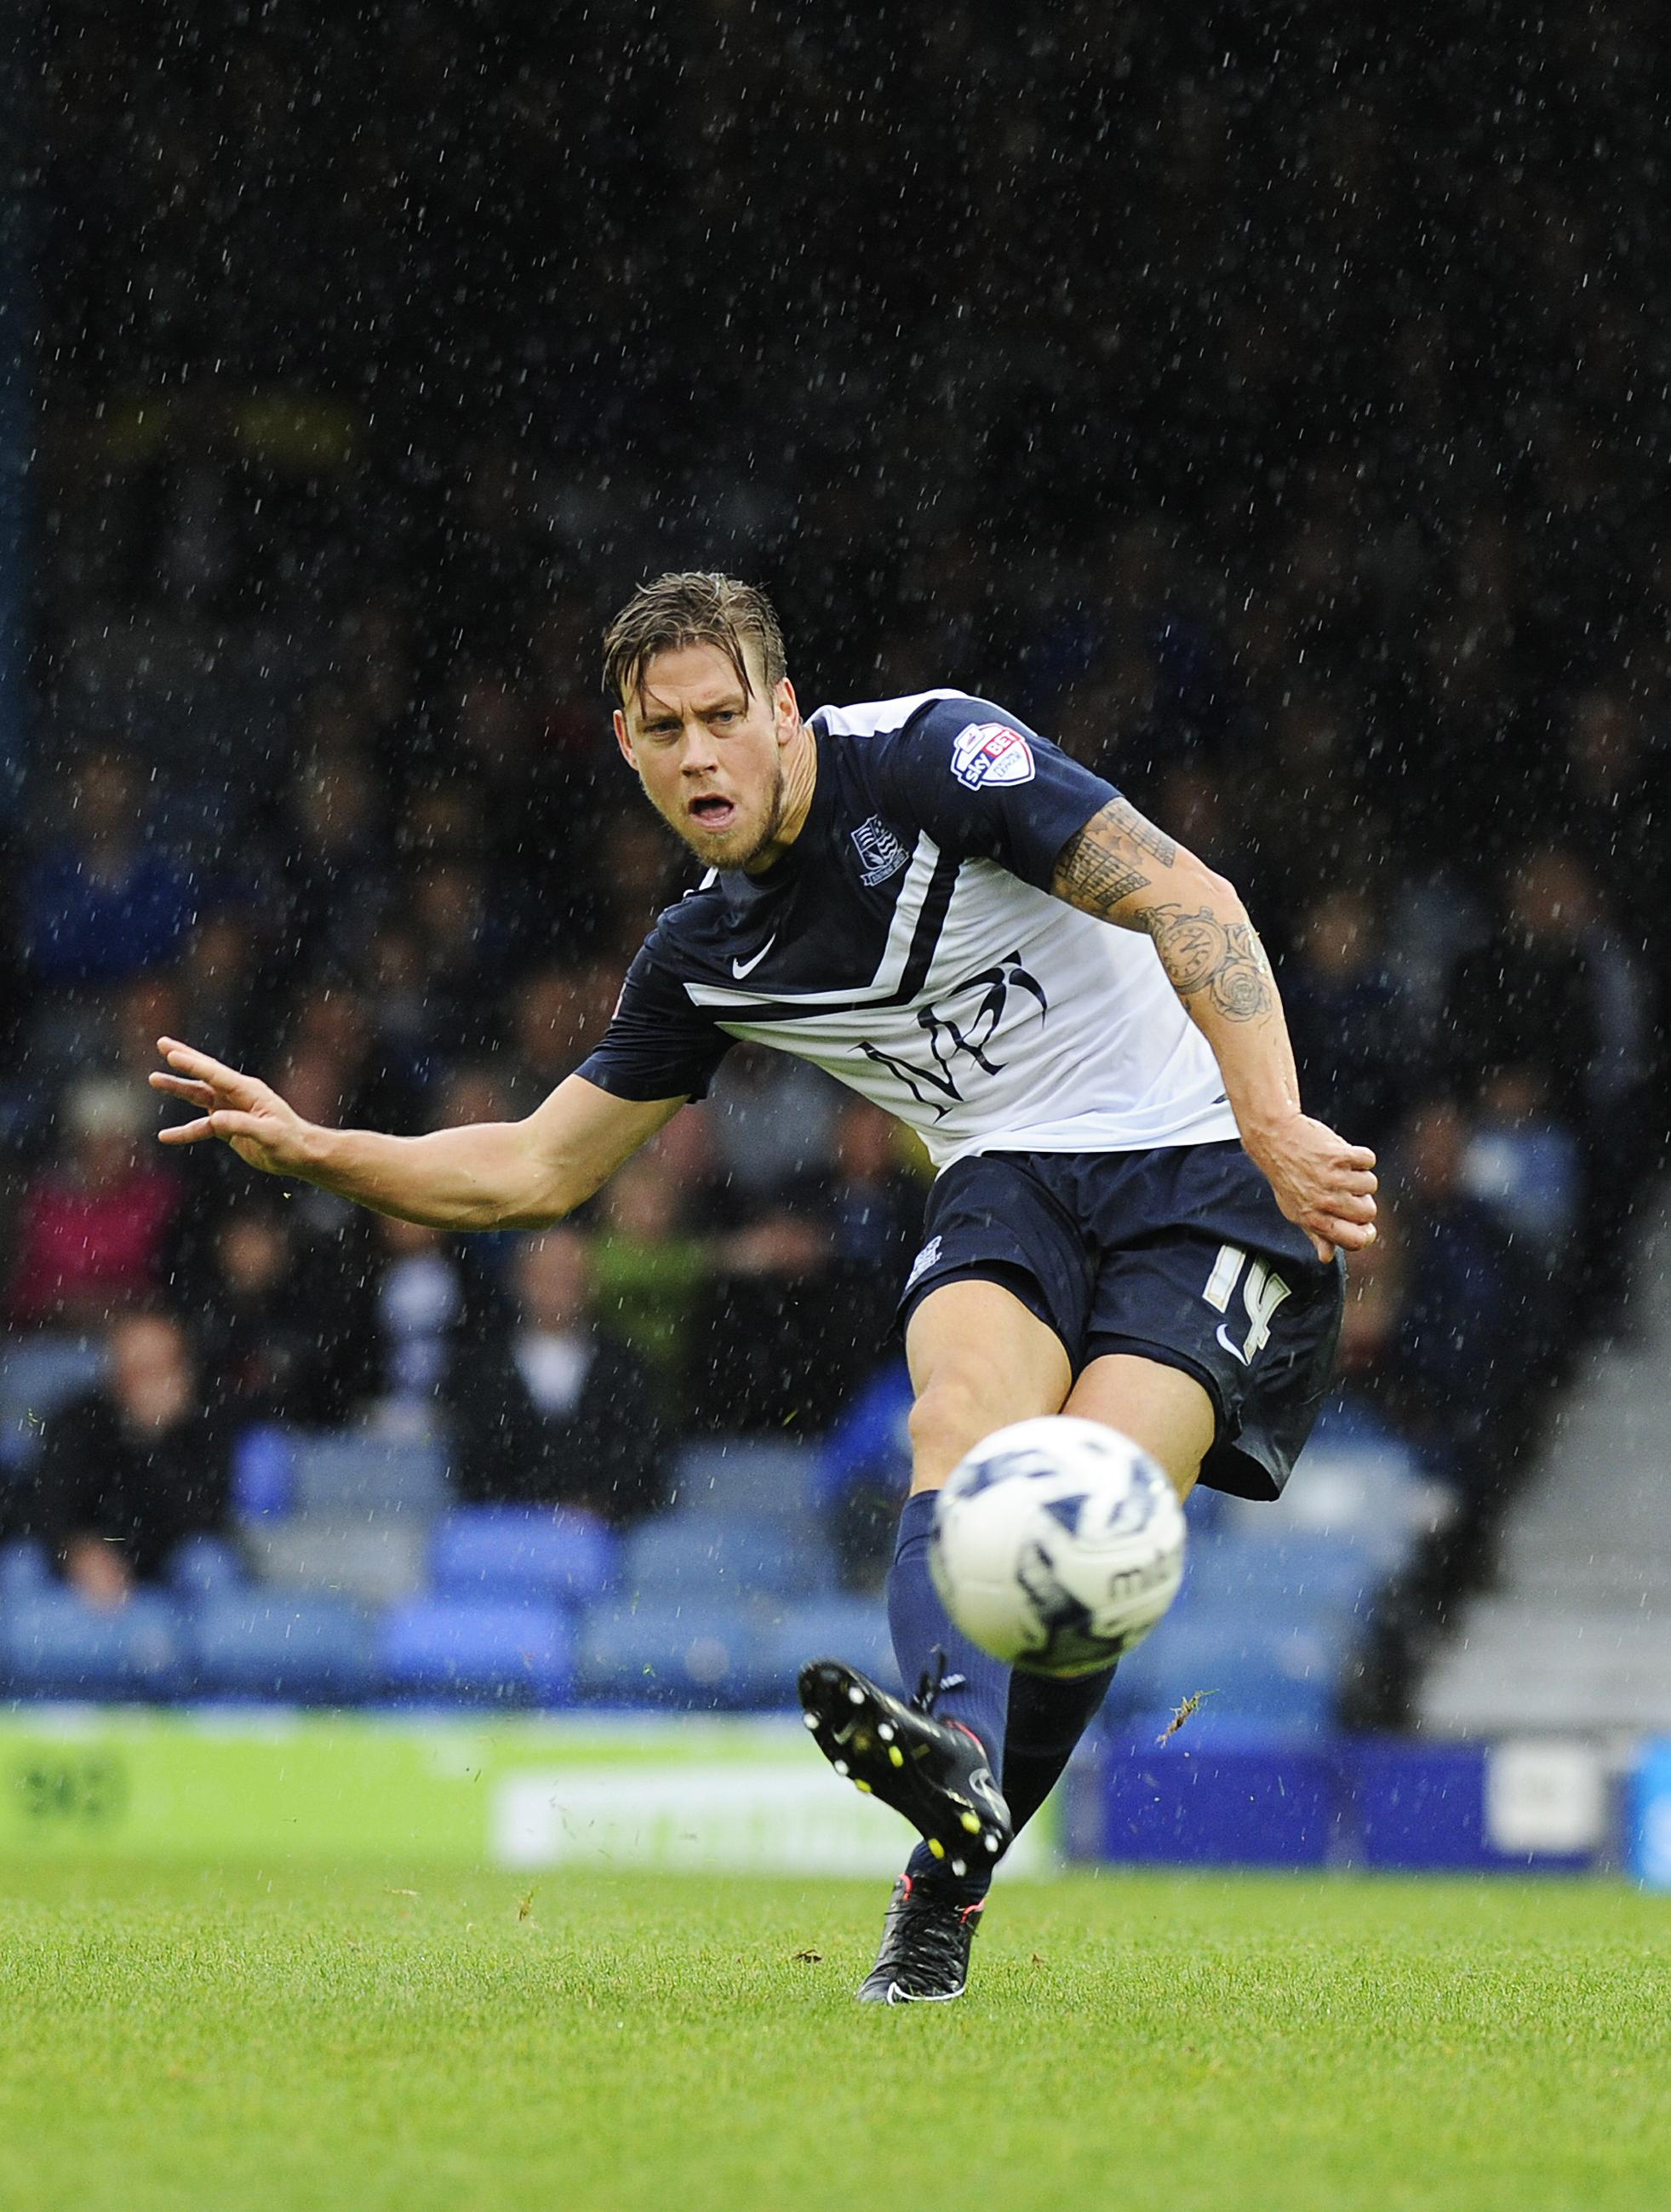 Kevan Hurst - felt Southend United had the chances to have beaten Morecambe